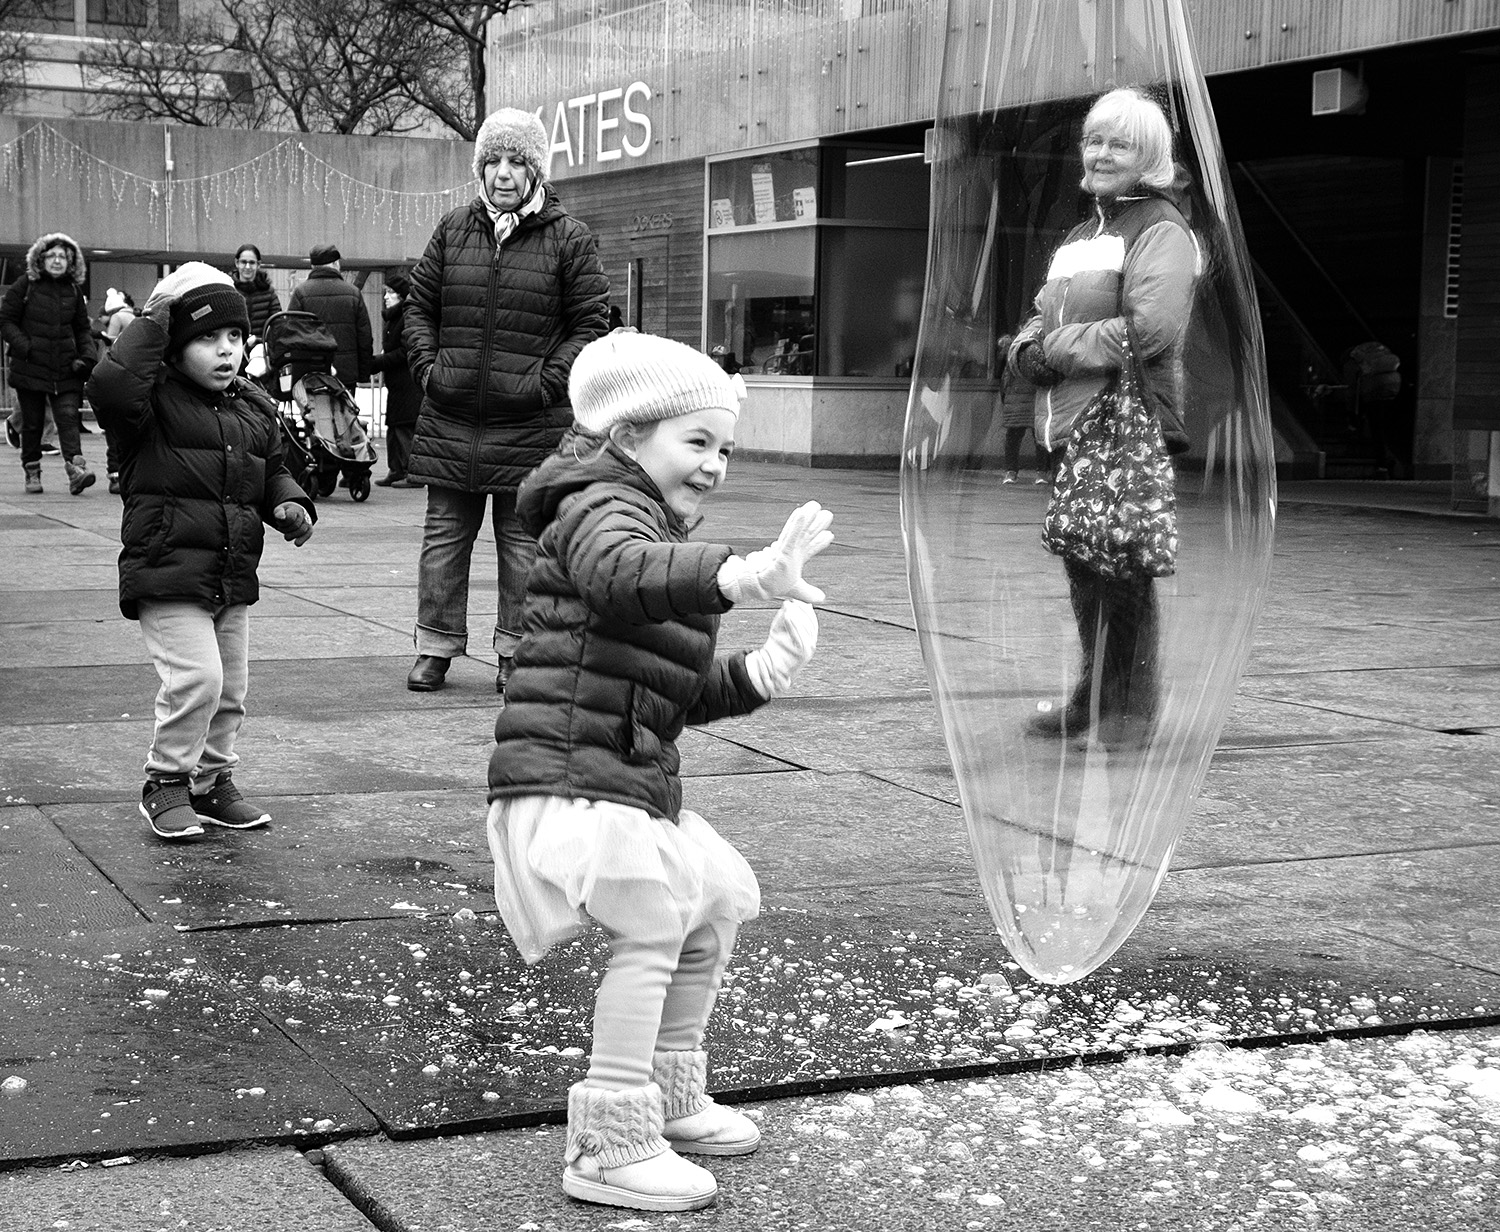 Joy is just a bubble away